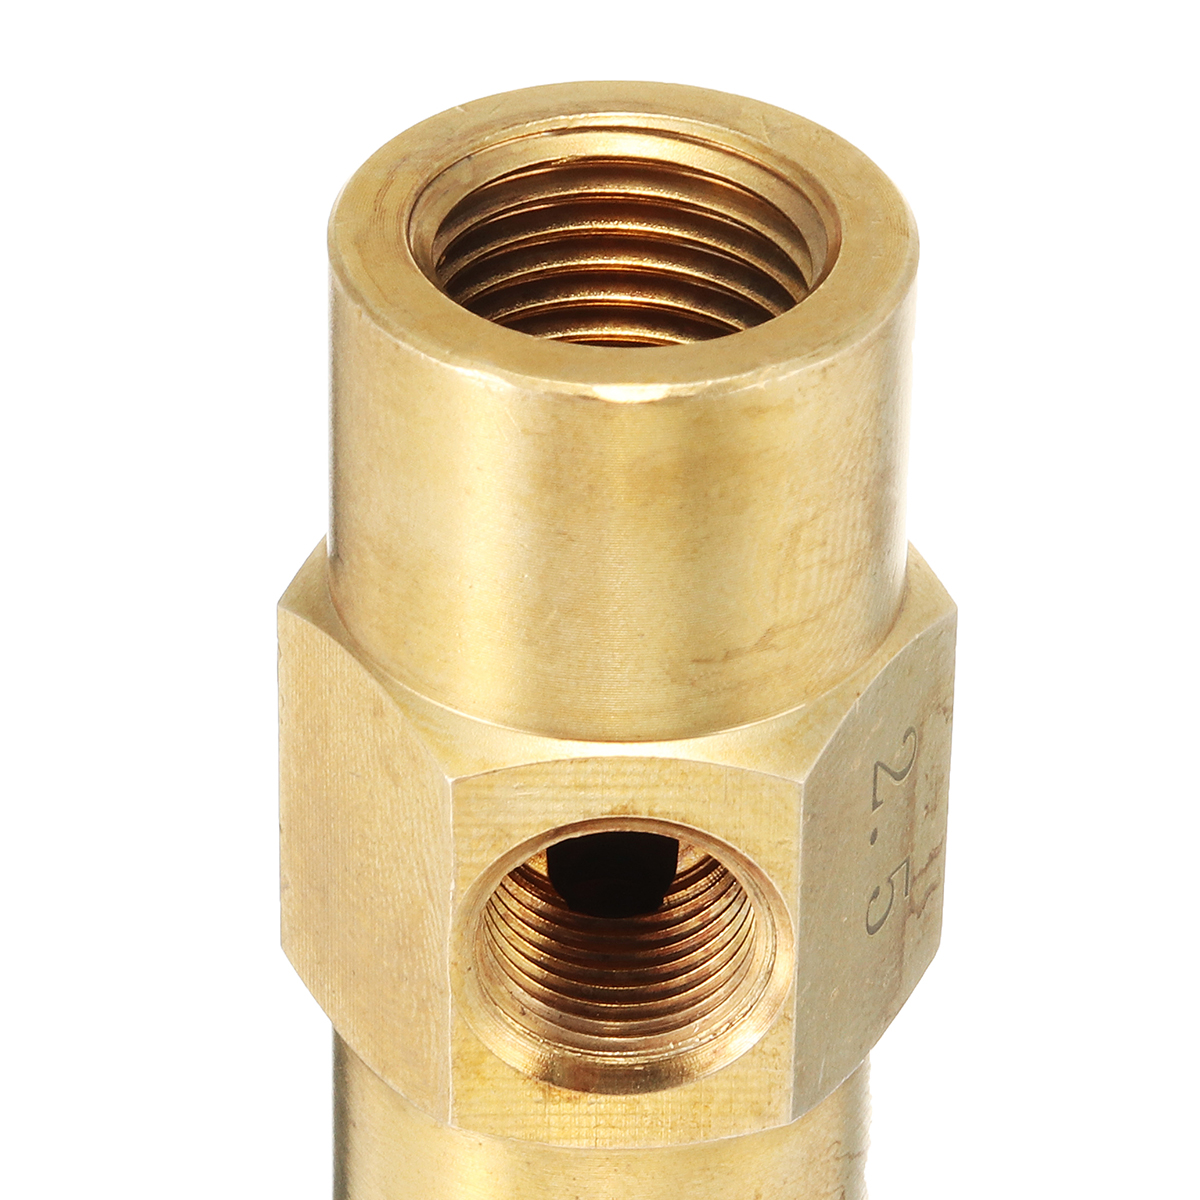 1/1.3/1.5/2/2.5mm Diesel Heavy Waste Oil Alcohol-based Fuel Burner Spray Nozzle